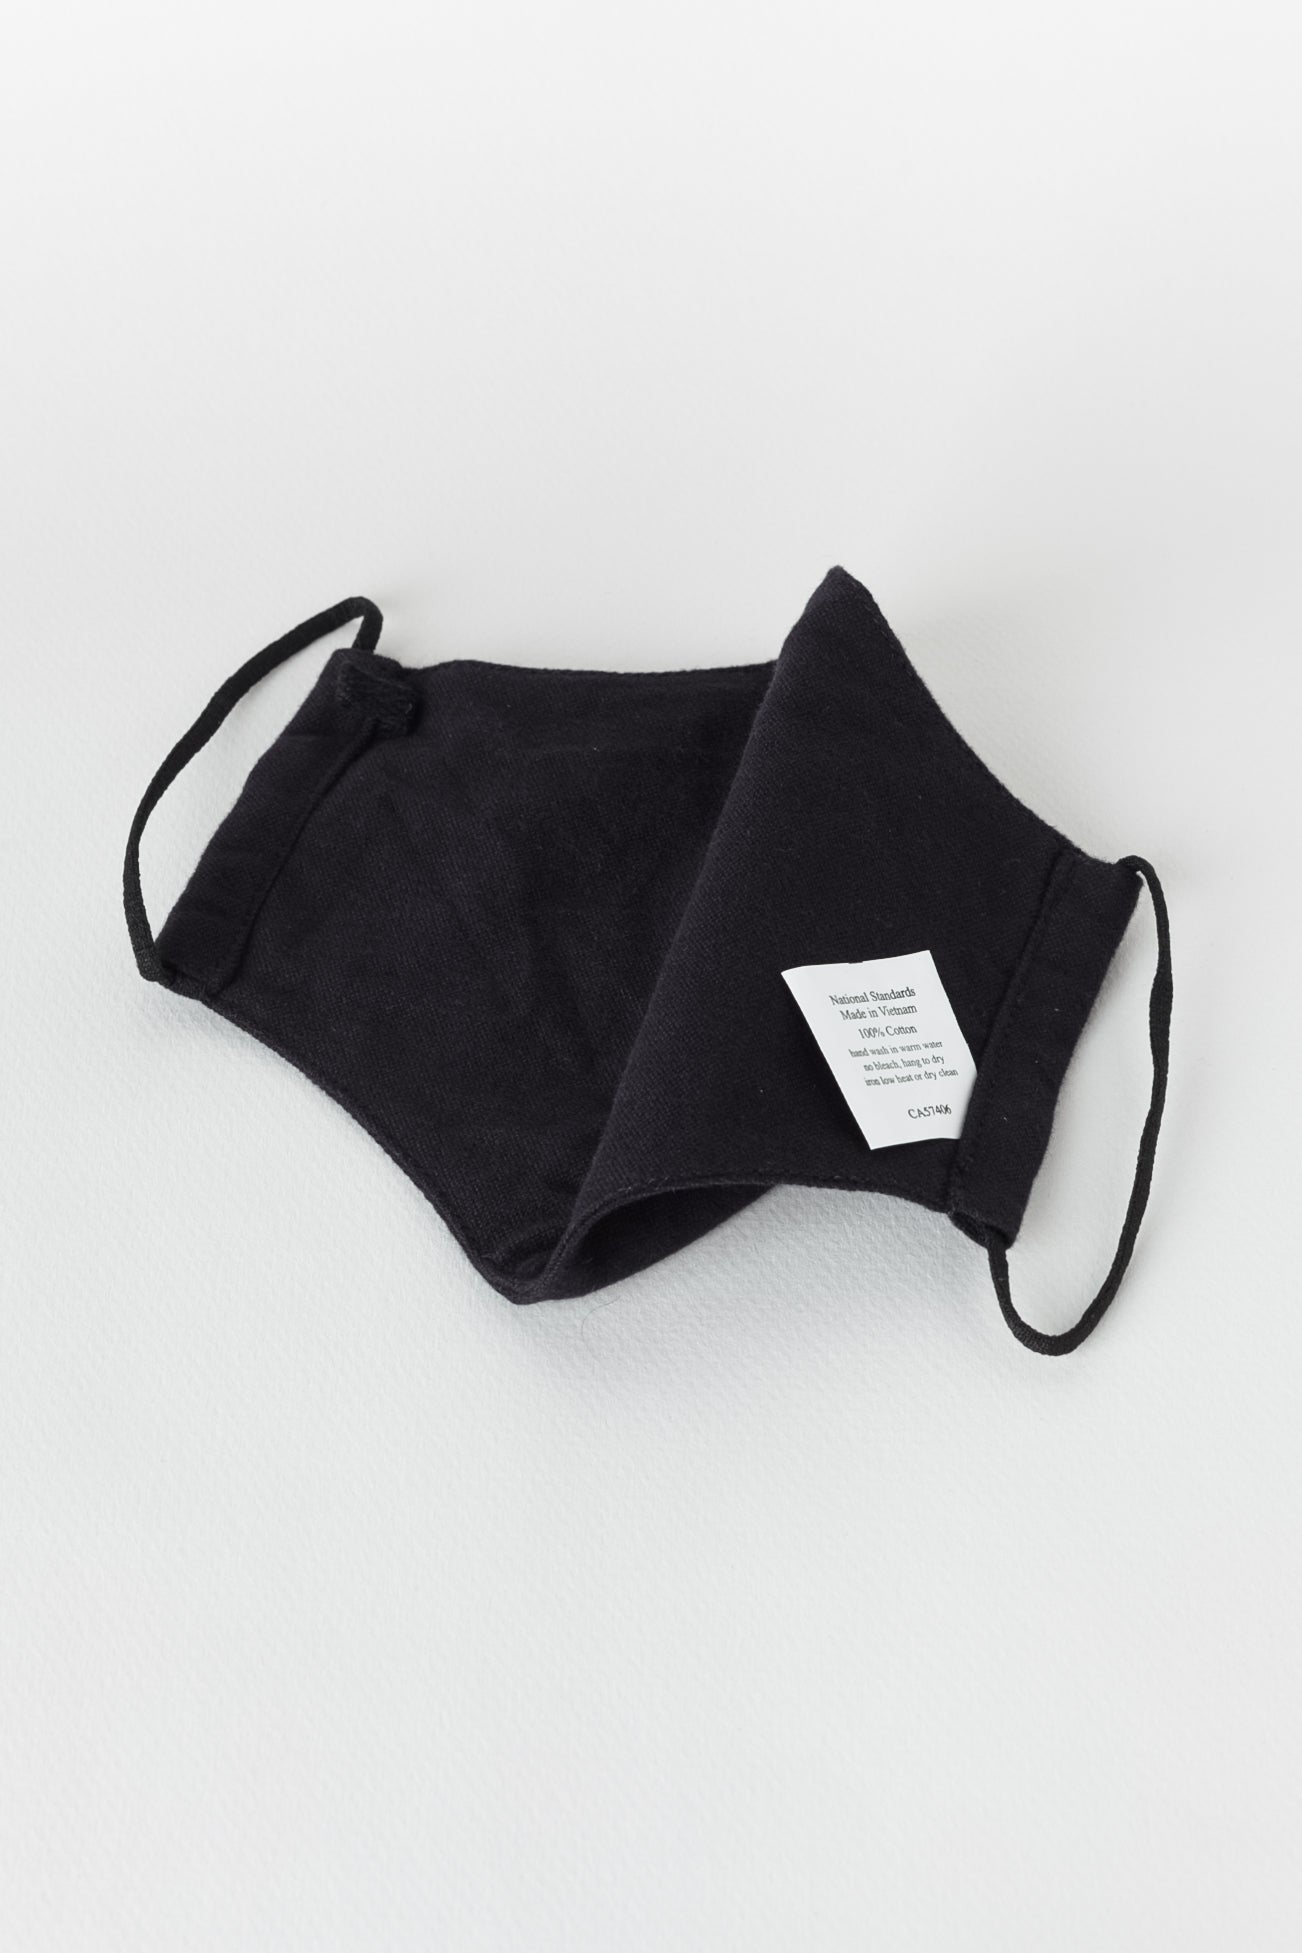 Japanese Brushed Oxford face mask in Black 01